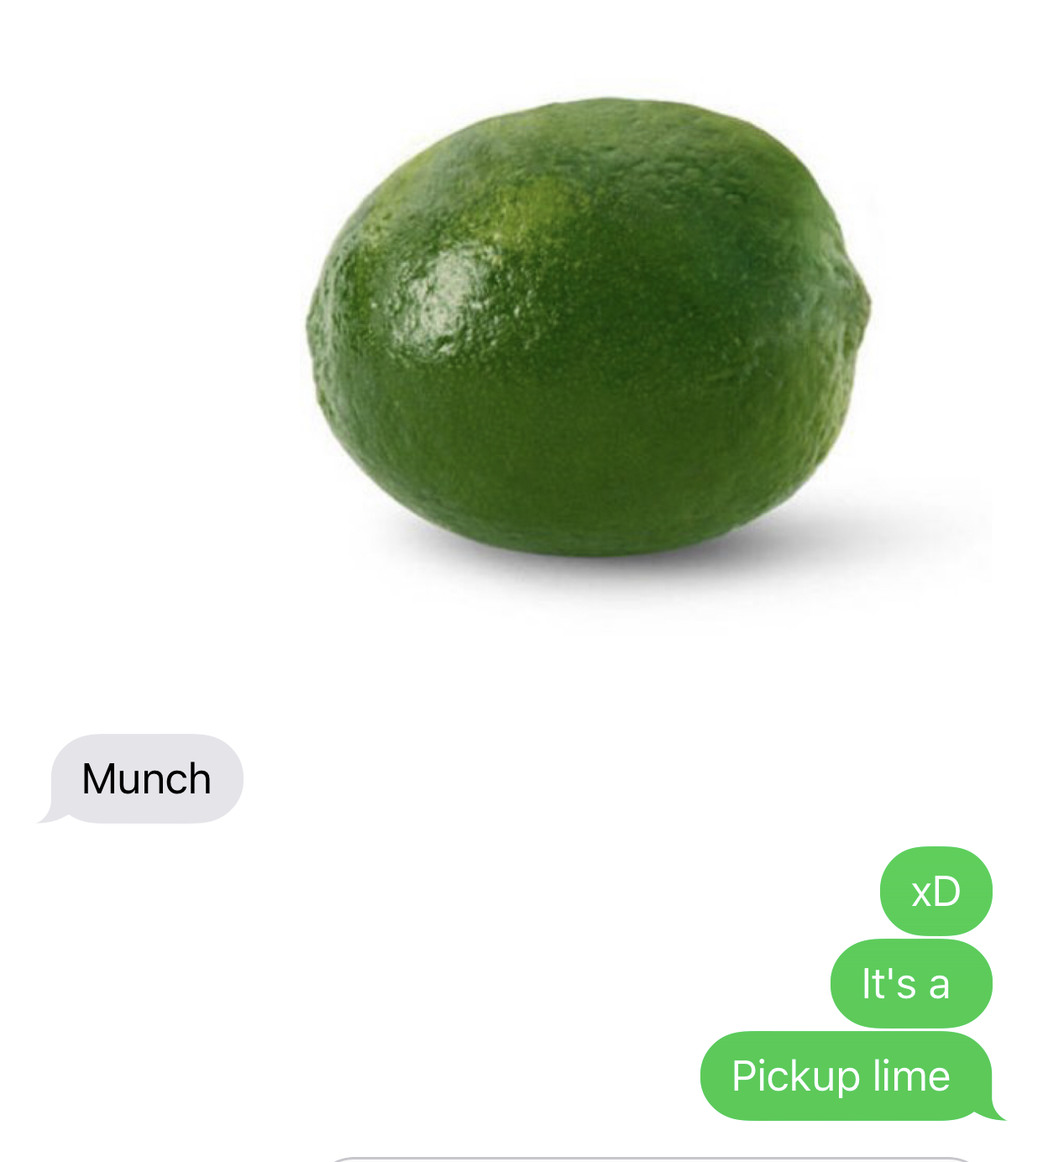 It's a pickup lime - meme